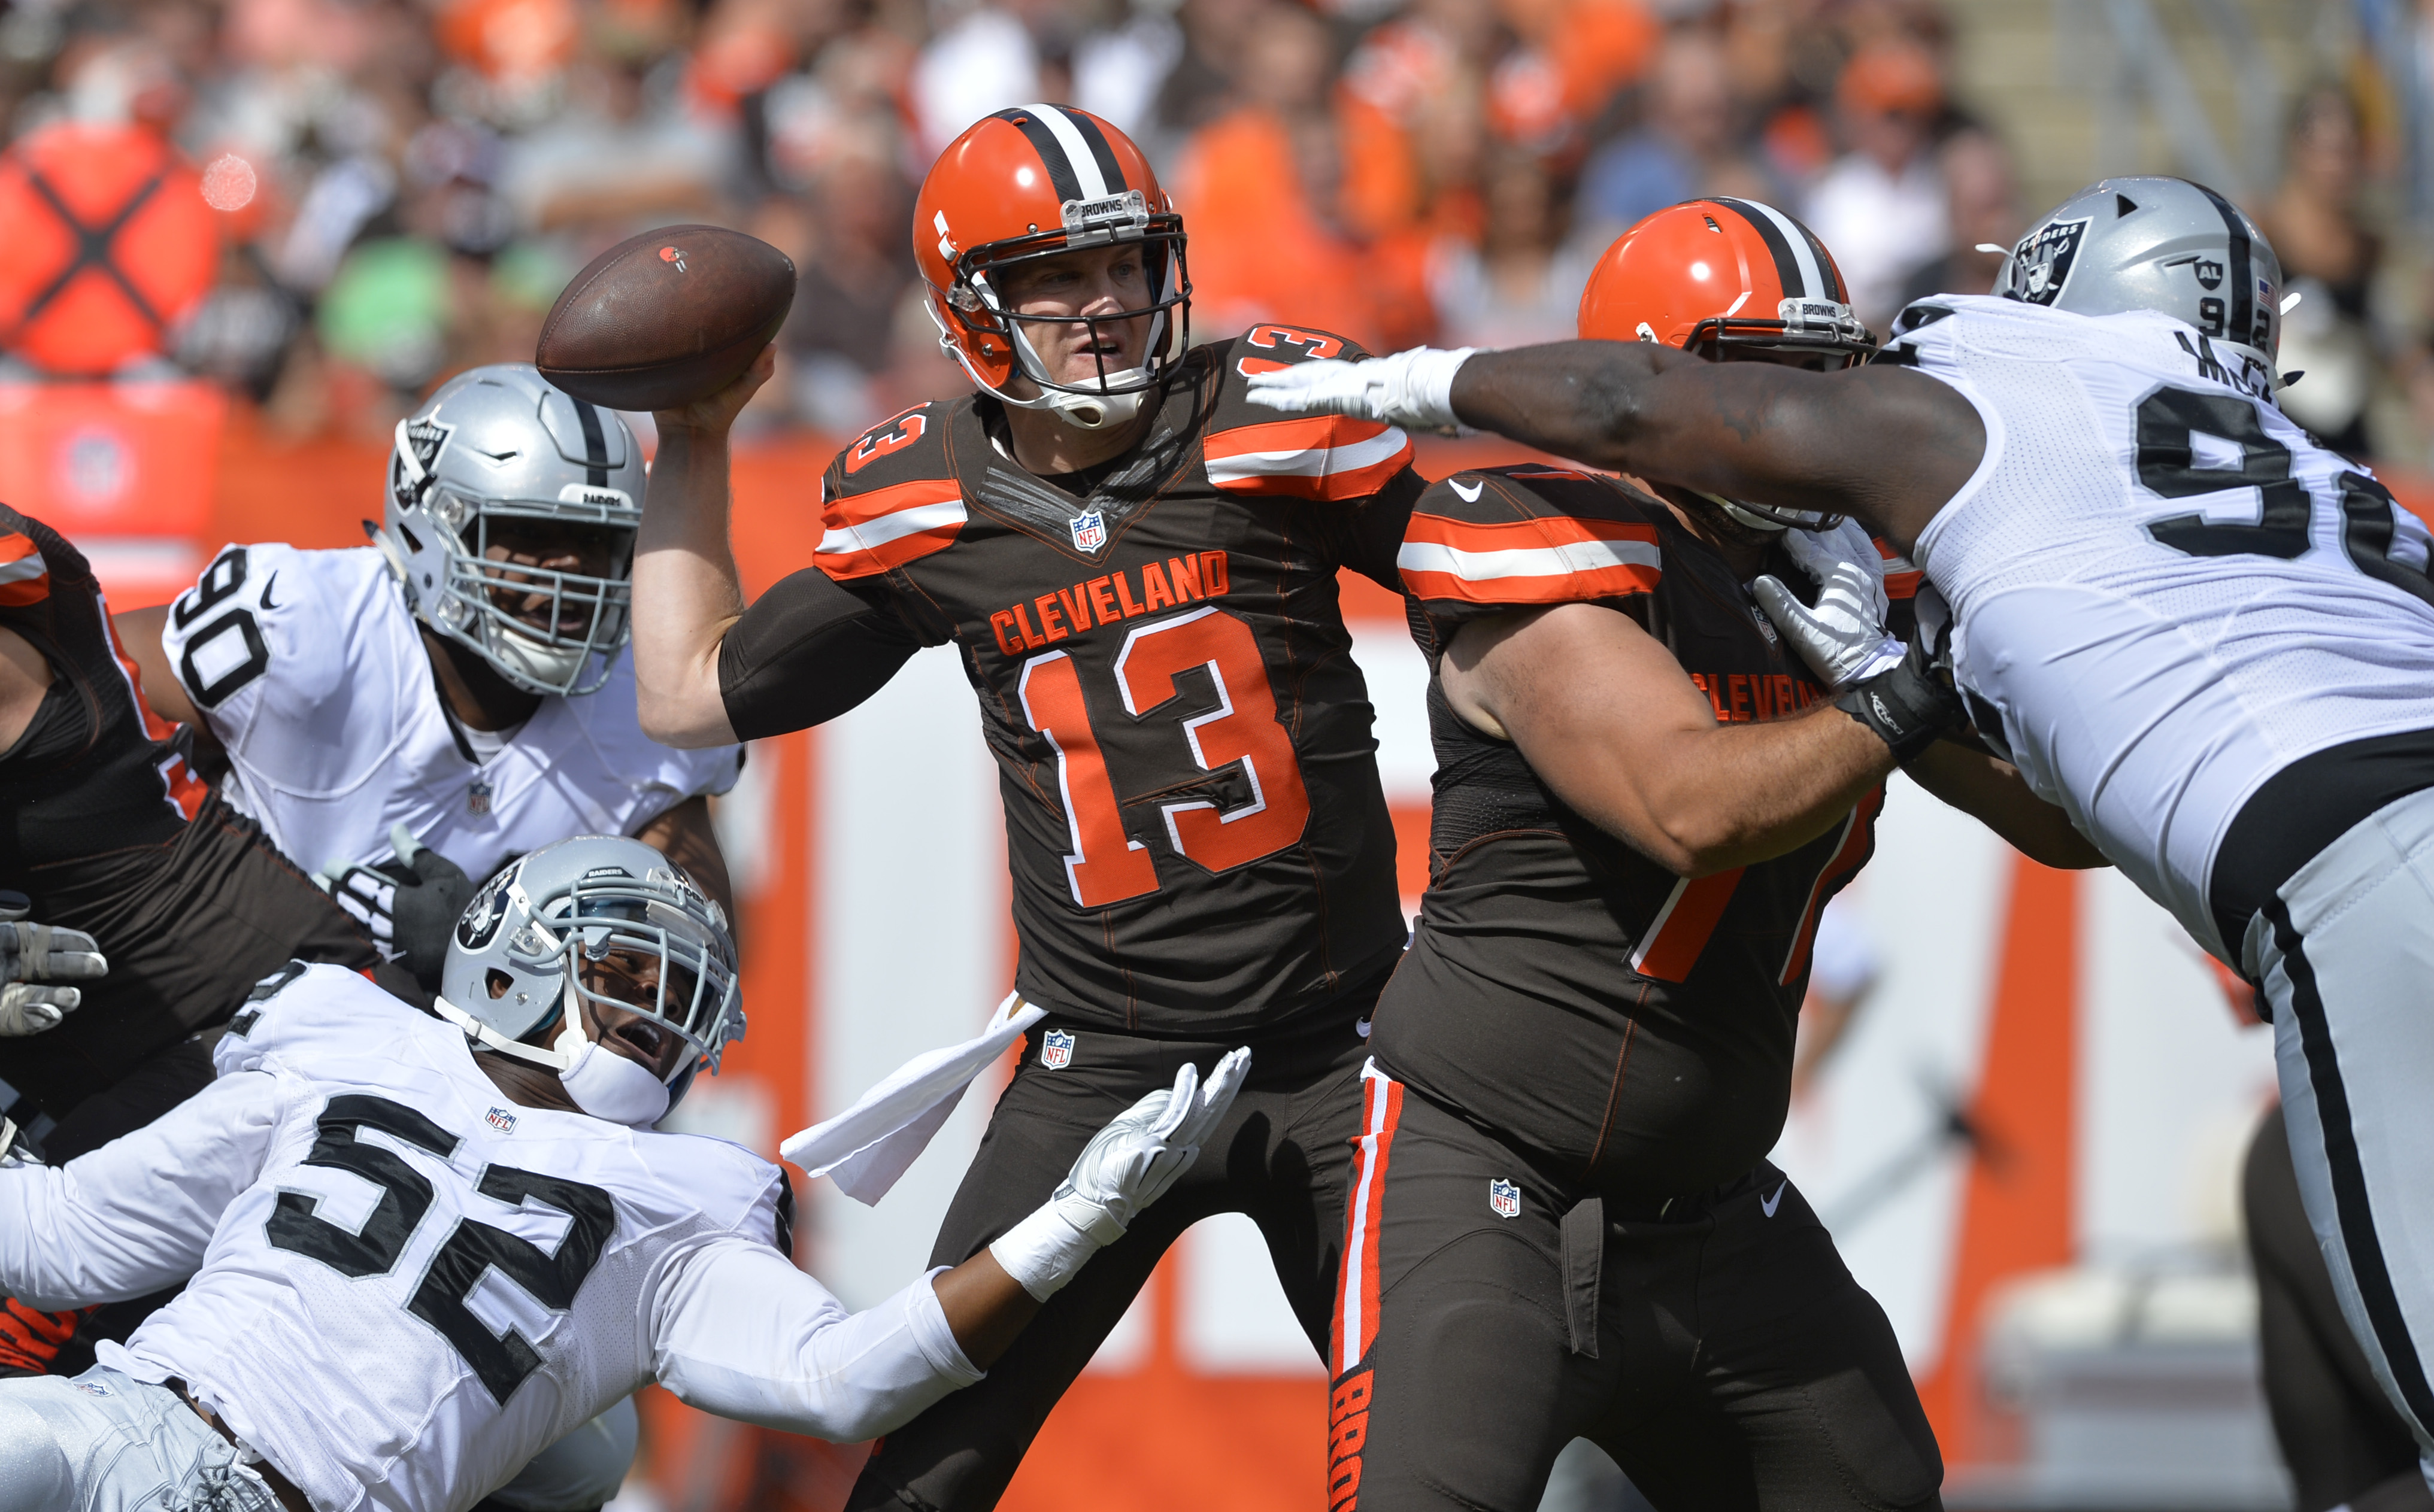 Cleveland Browns quarterback Josh McCown (13) throws against the Oakland Raiders during an NFL football game, Sunday, Sept. 27, 2015, in Cleveland. (AP Photo/David Richard)